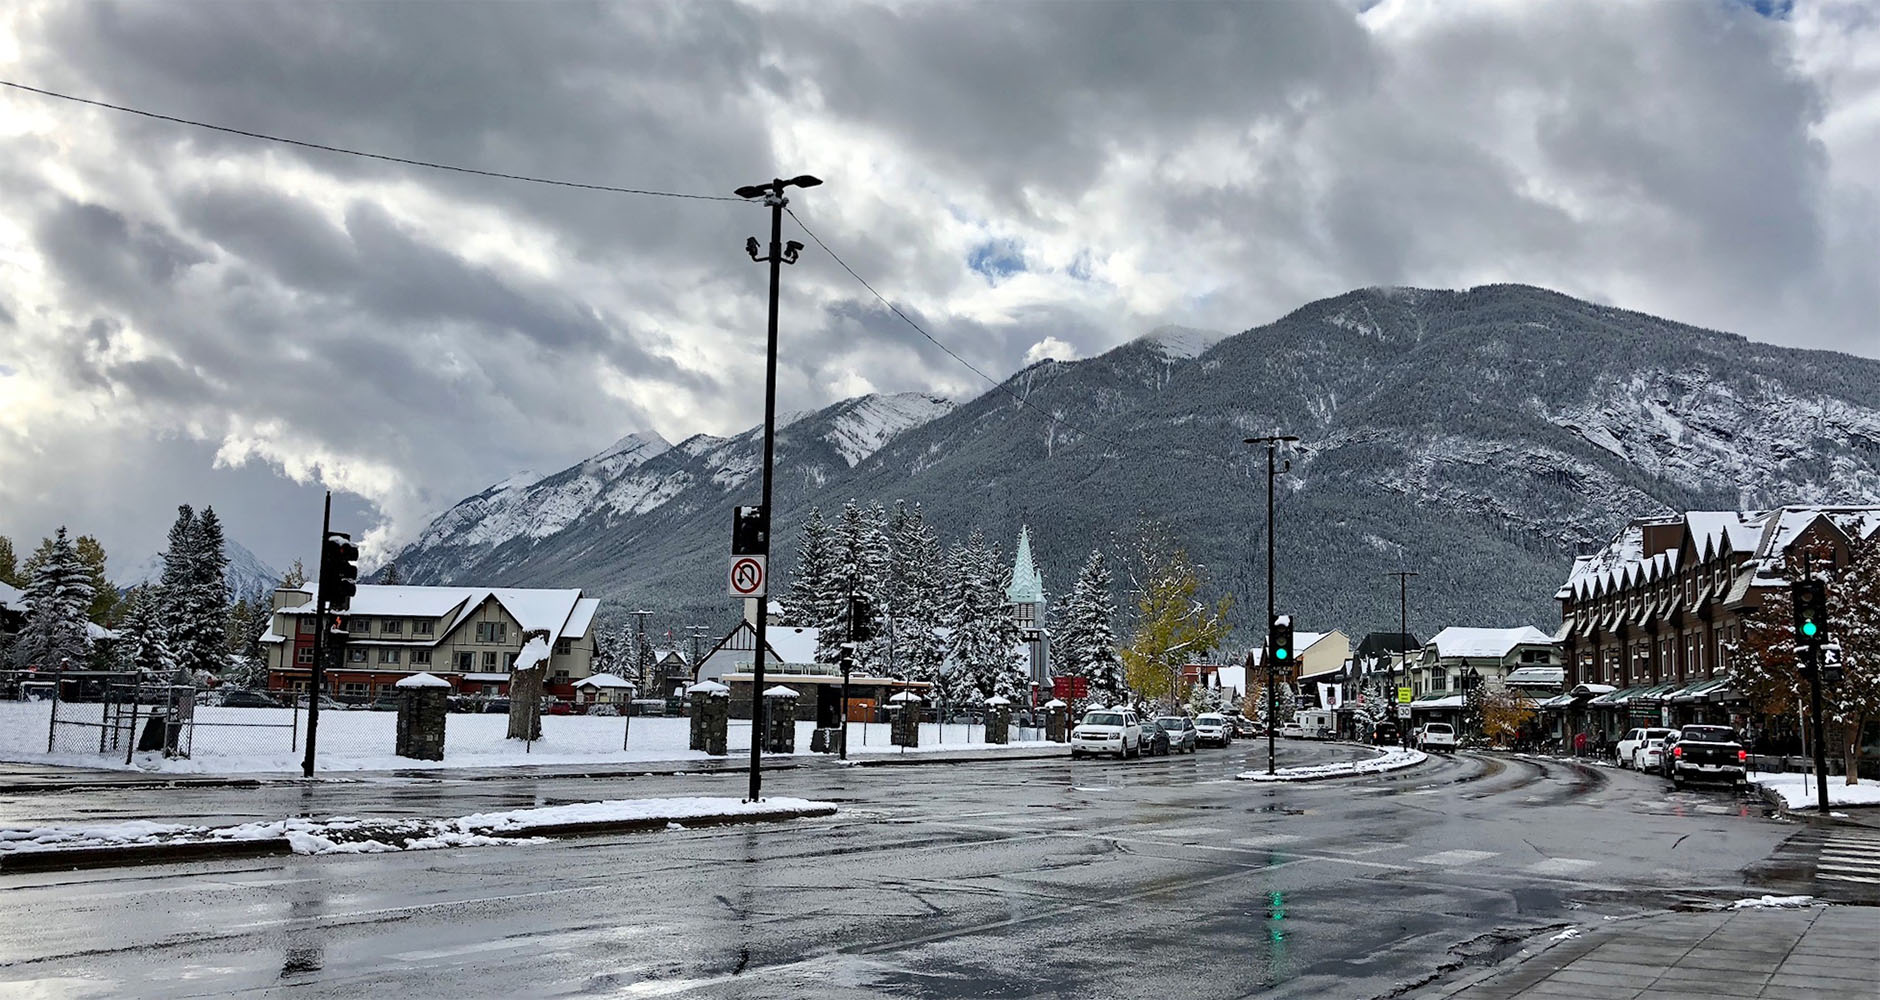 The lovely town of Banff